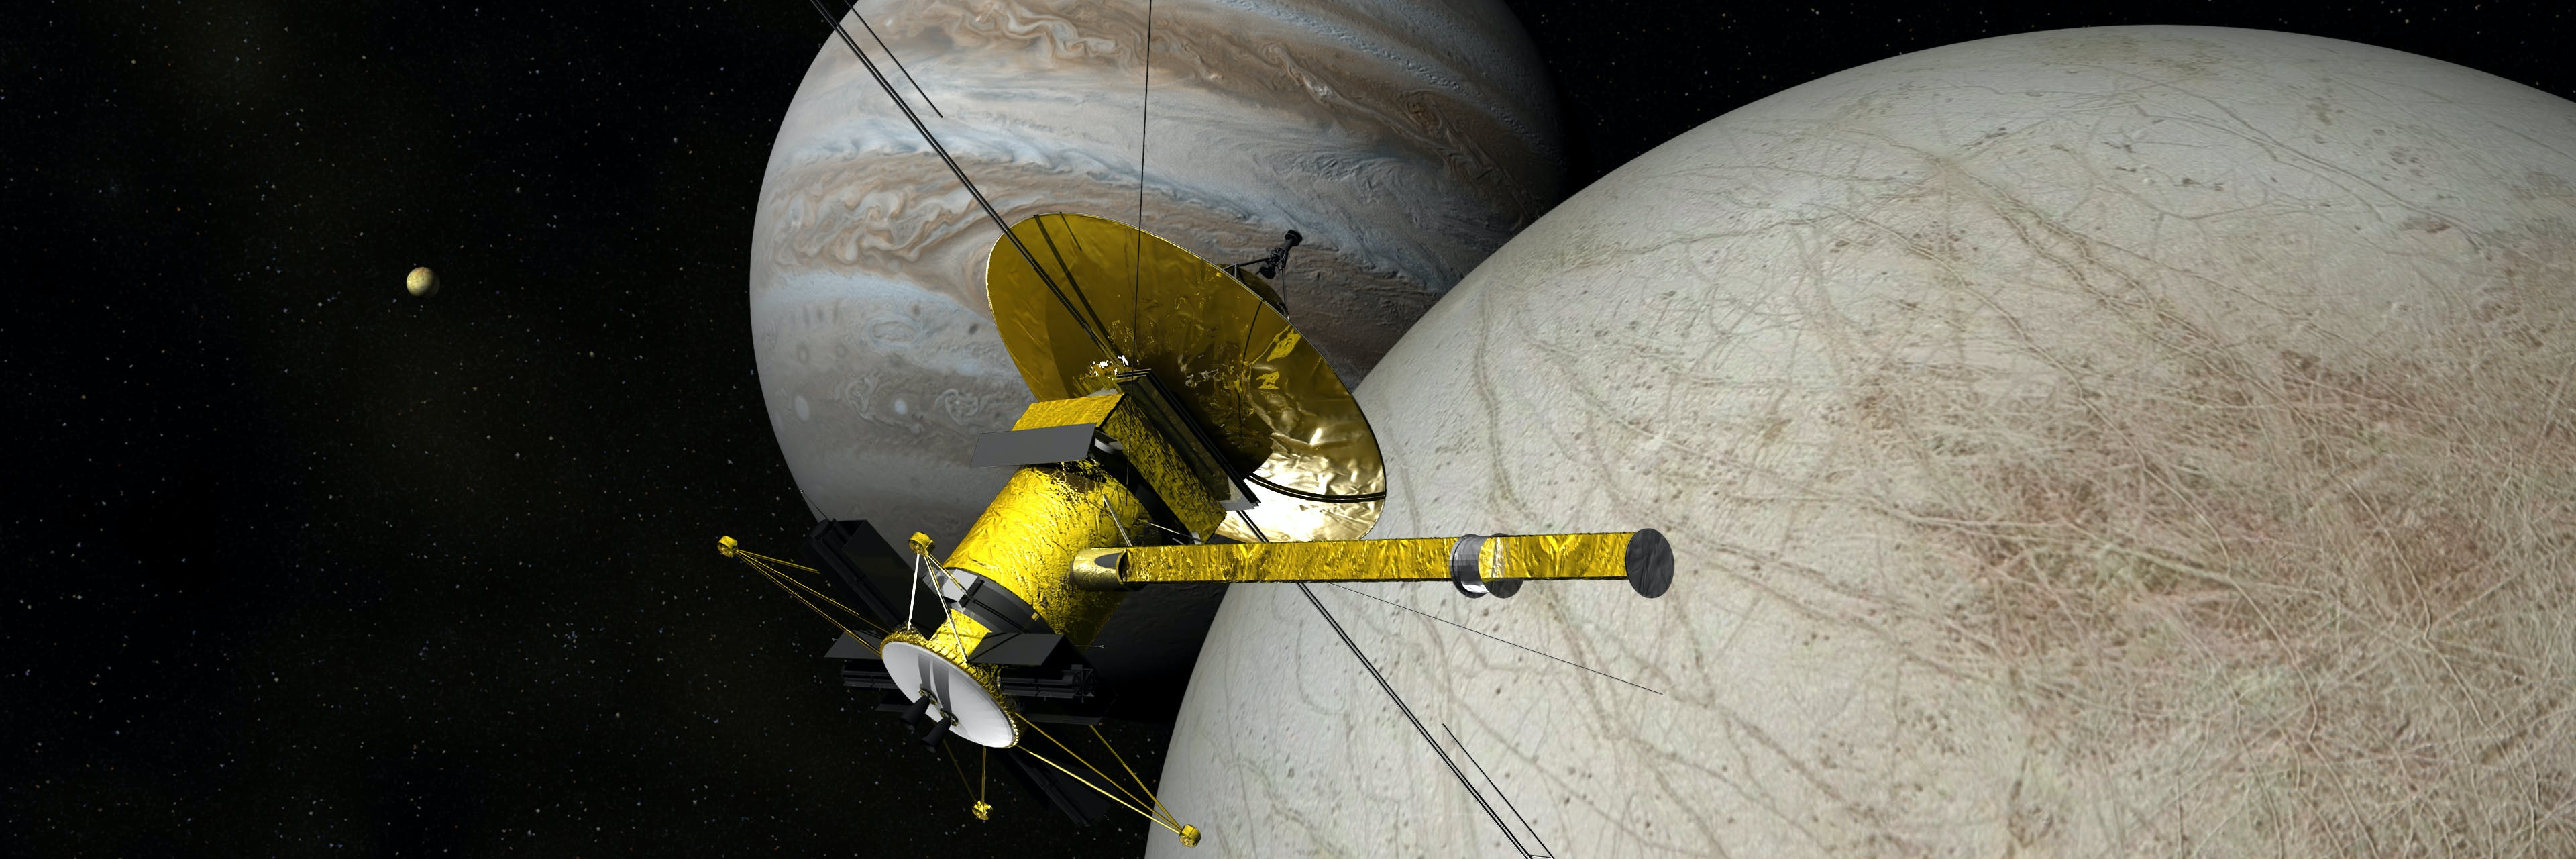 The Clipper Spacecraft Above Europa - Ver 2/B